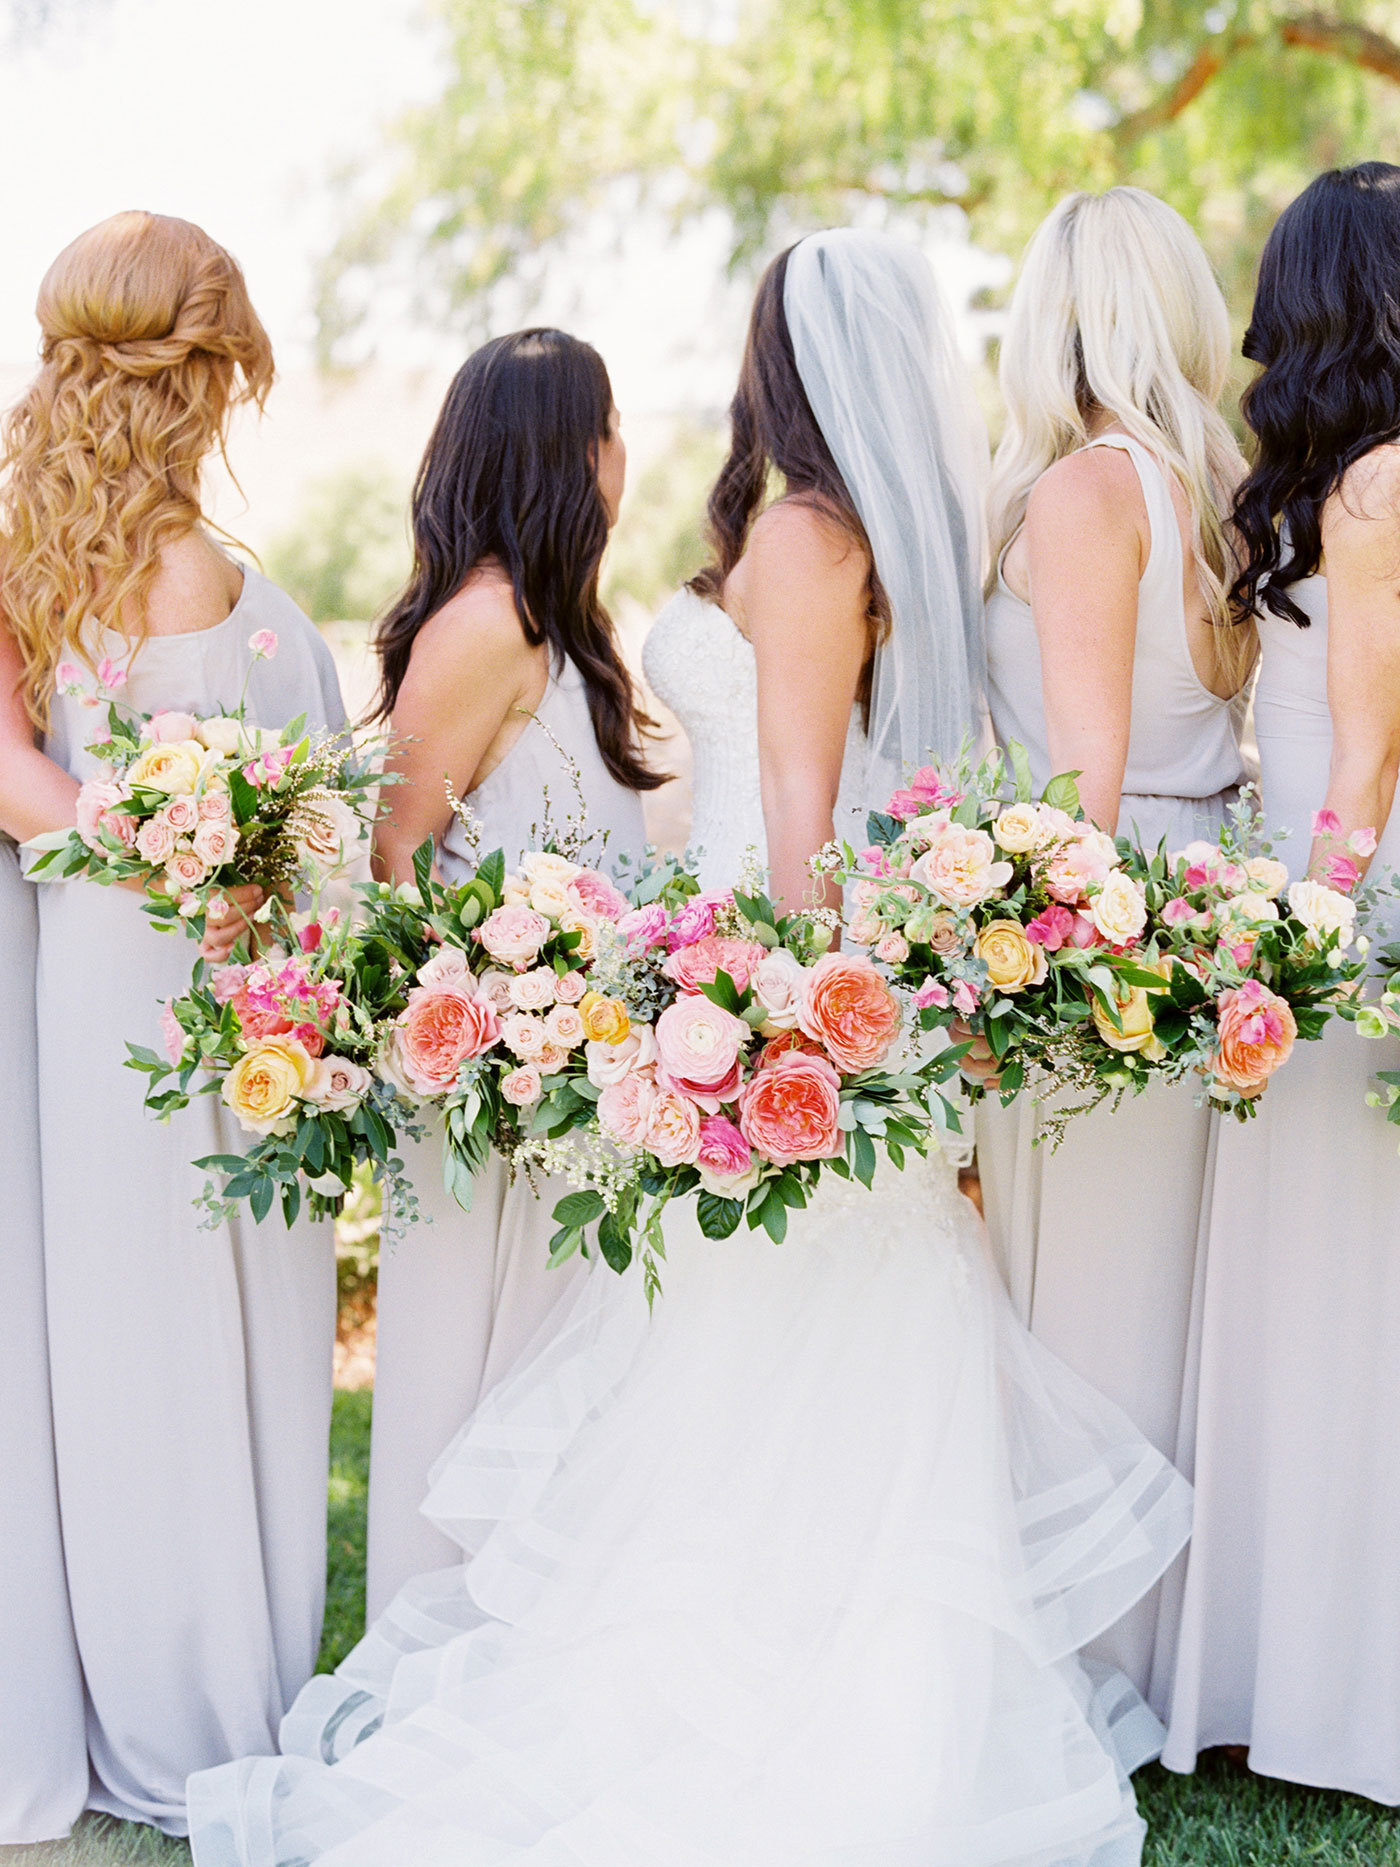 Bride & Bridal Party Bouquets